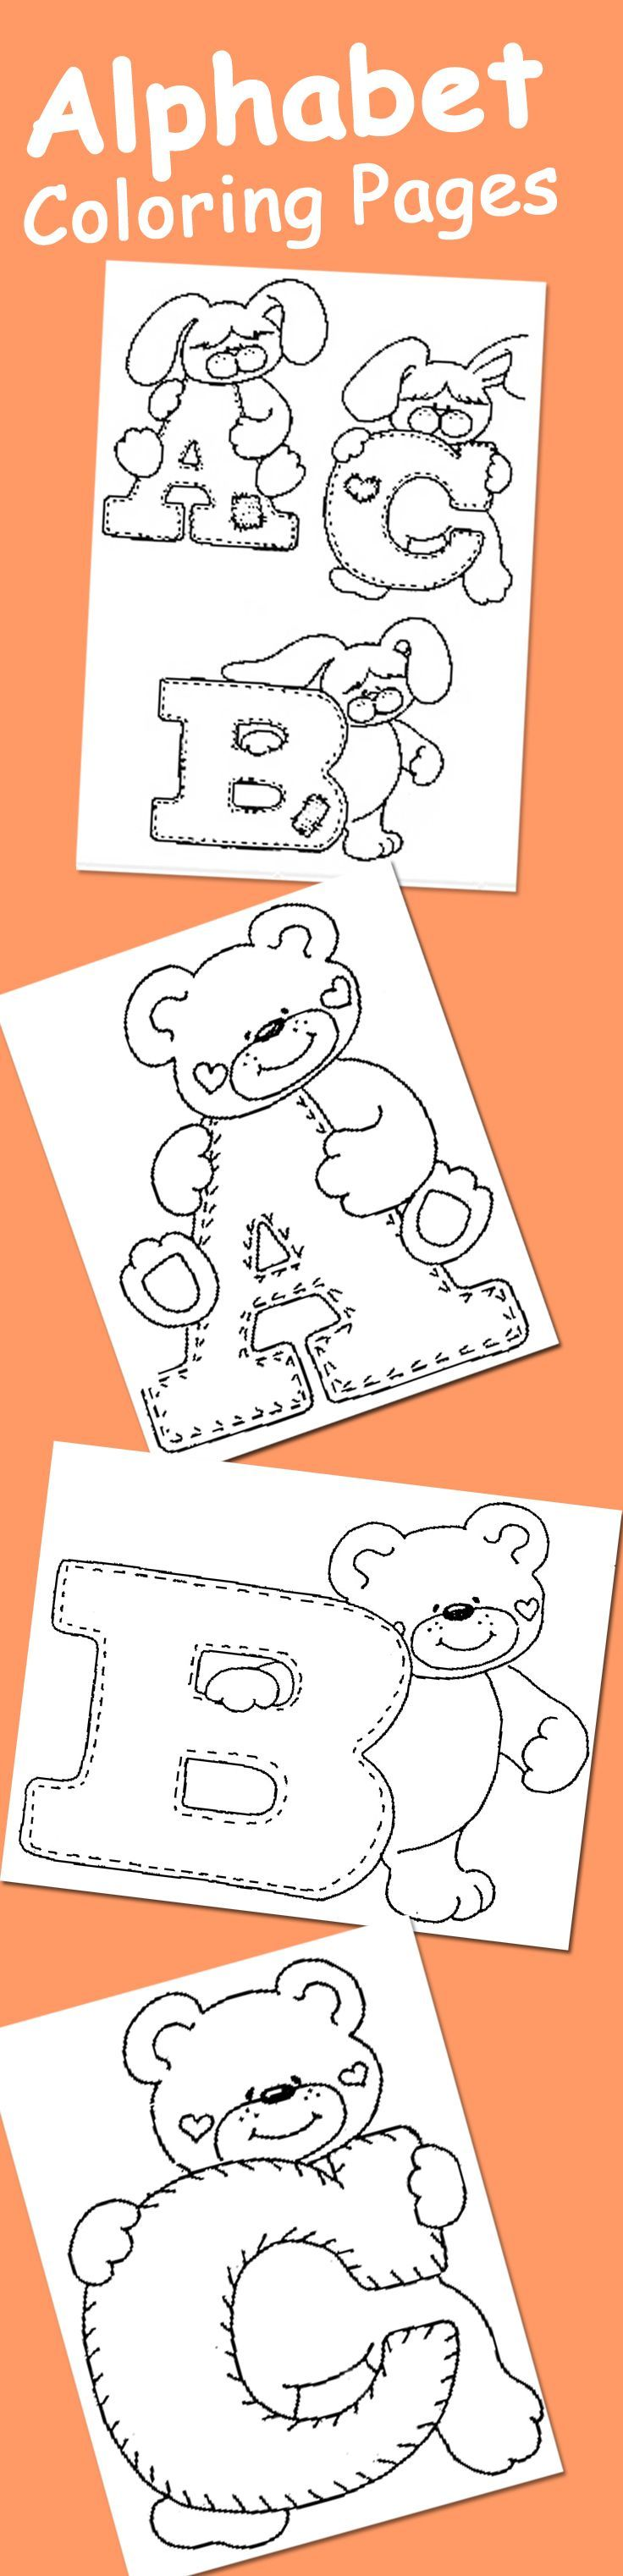 Heart learn colors, coloring pages for Kids | Drawing ...